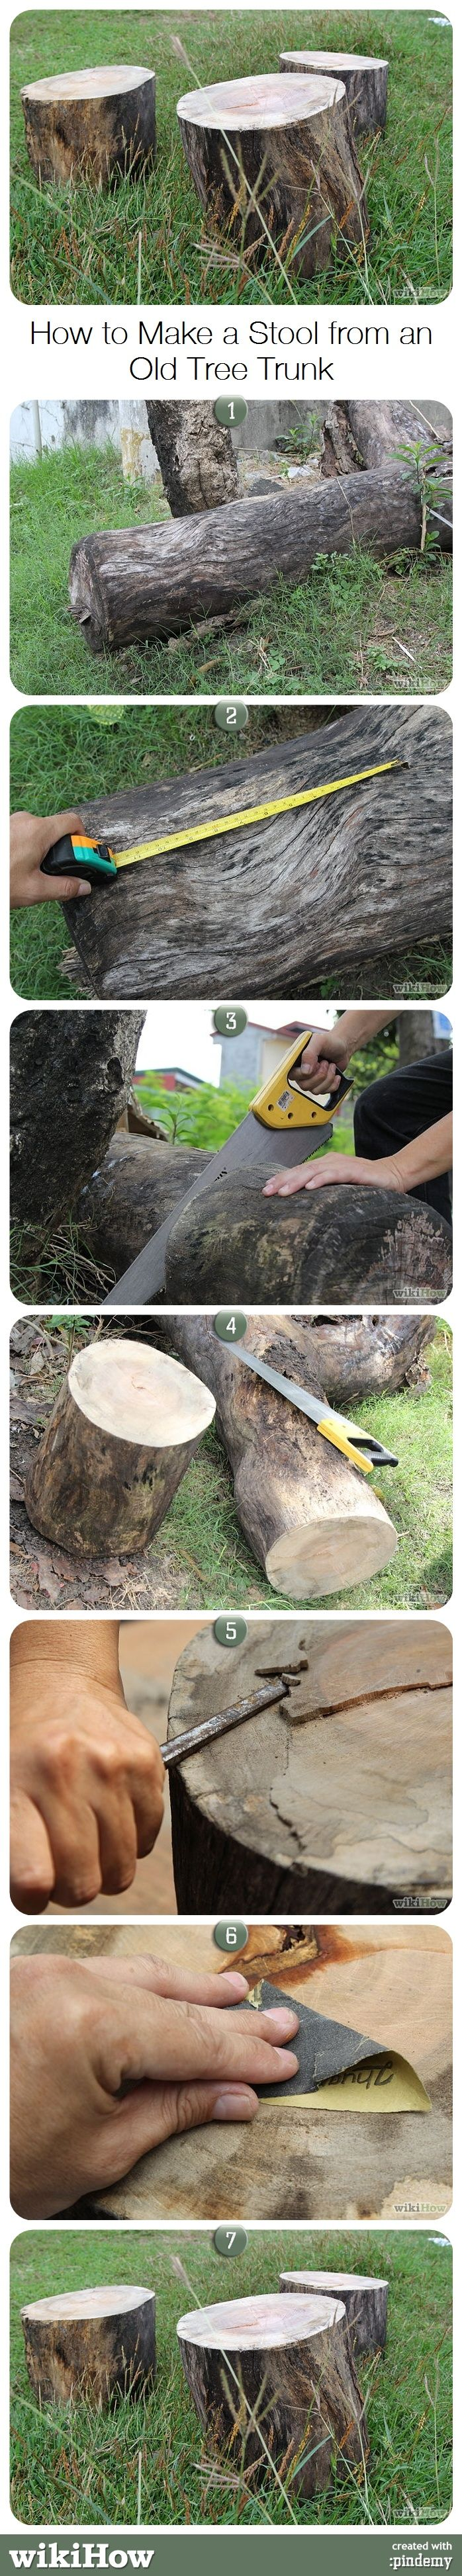 Make A Stool From An Old Tree Trunk